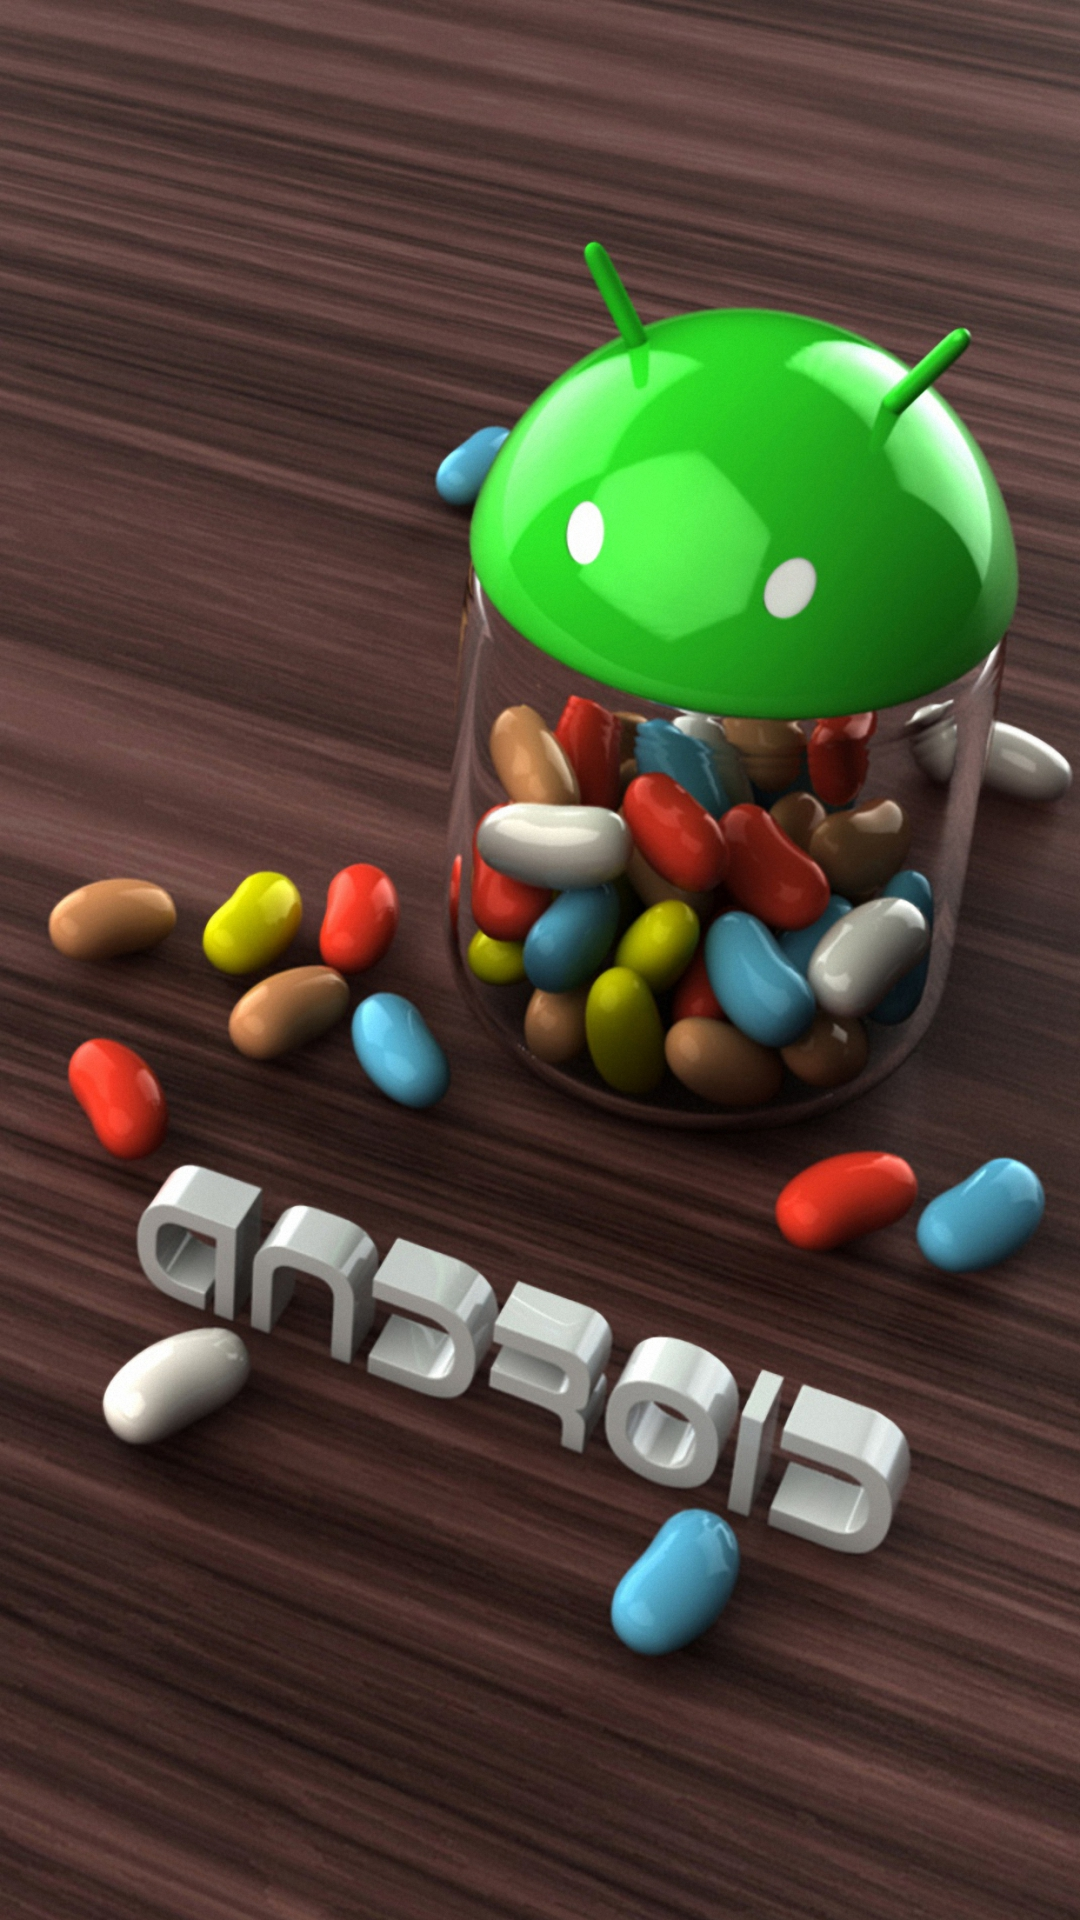 HD android pill 3d wallpaper for iPhone 6 6s plus 1080x1920